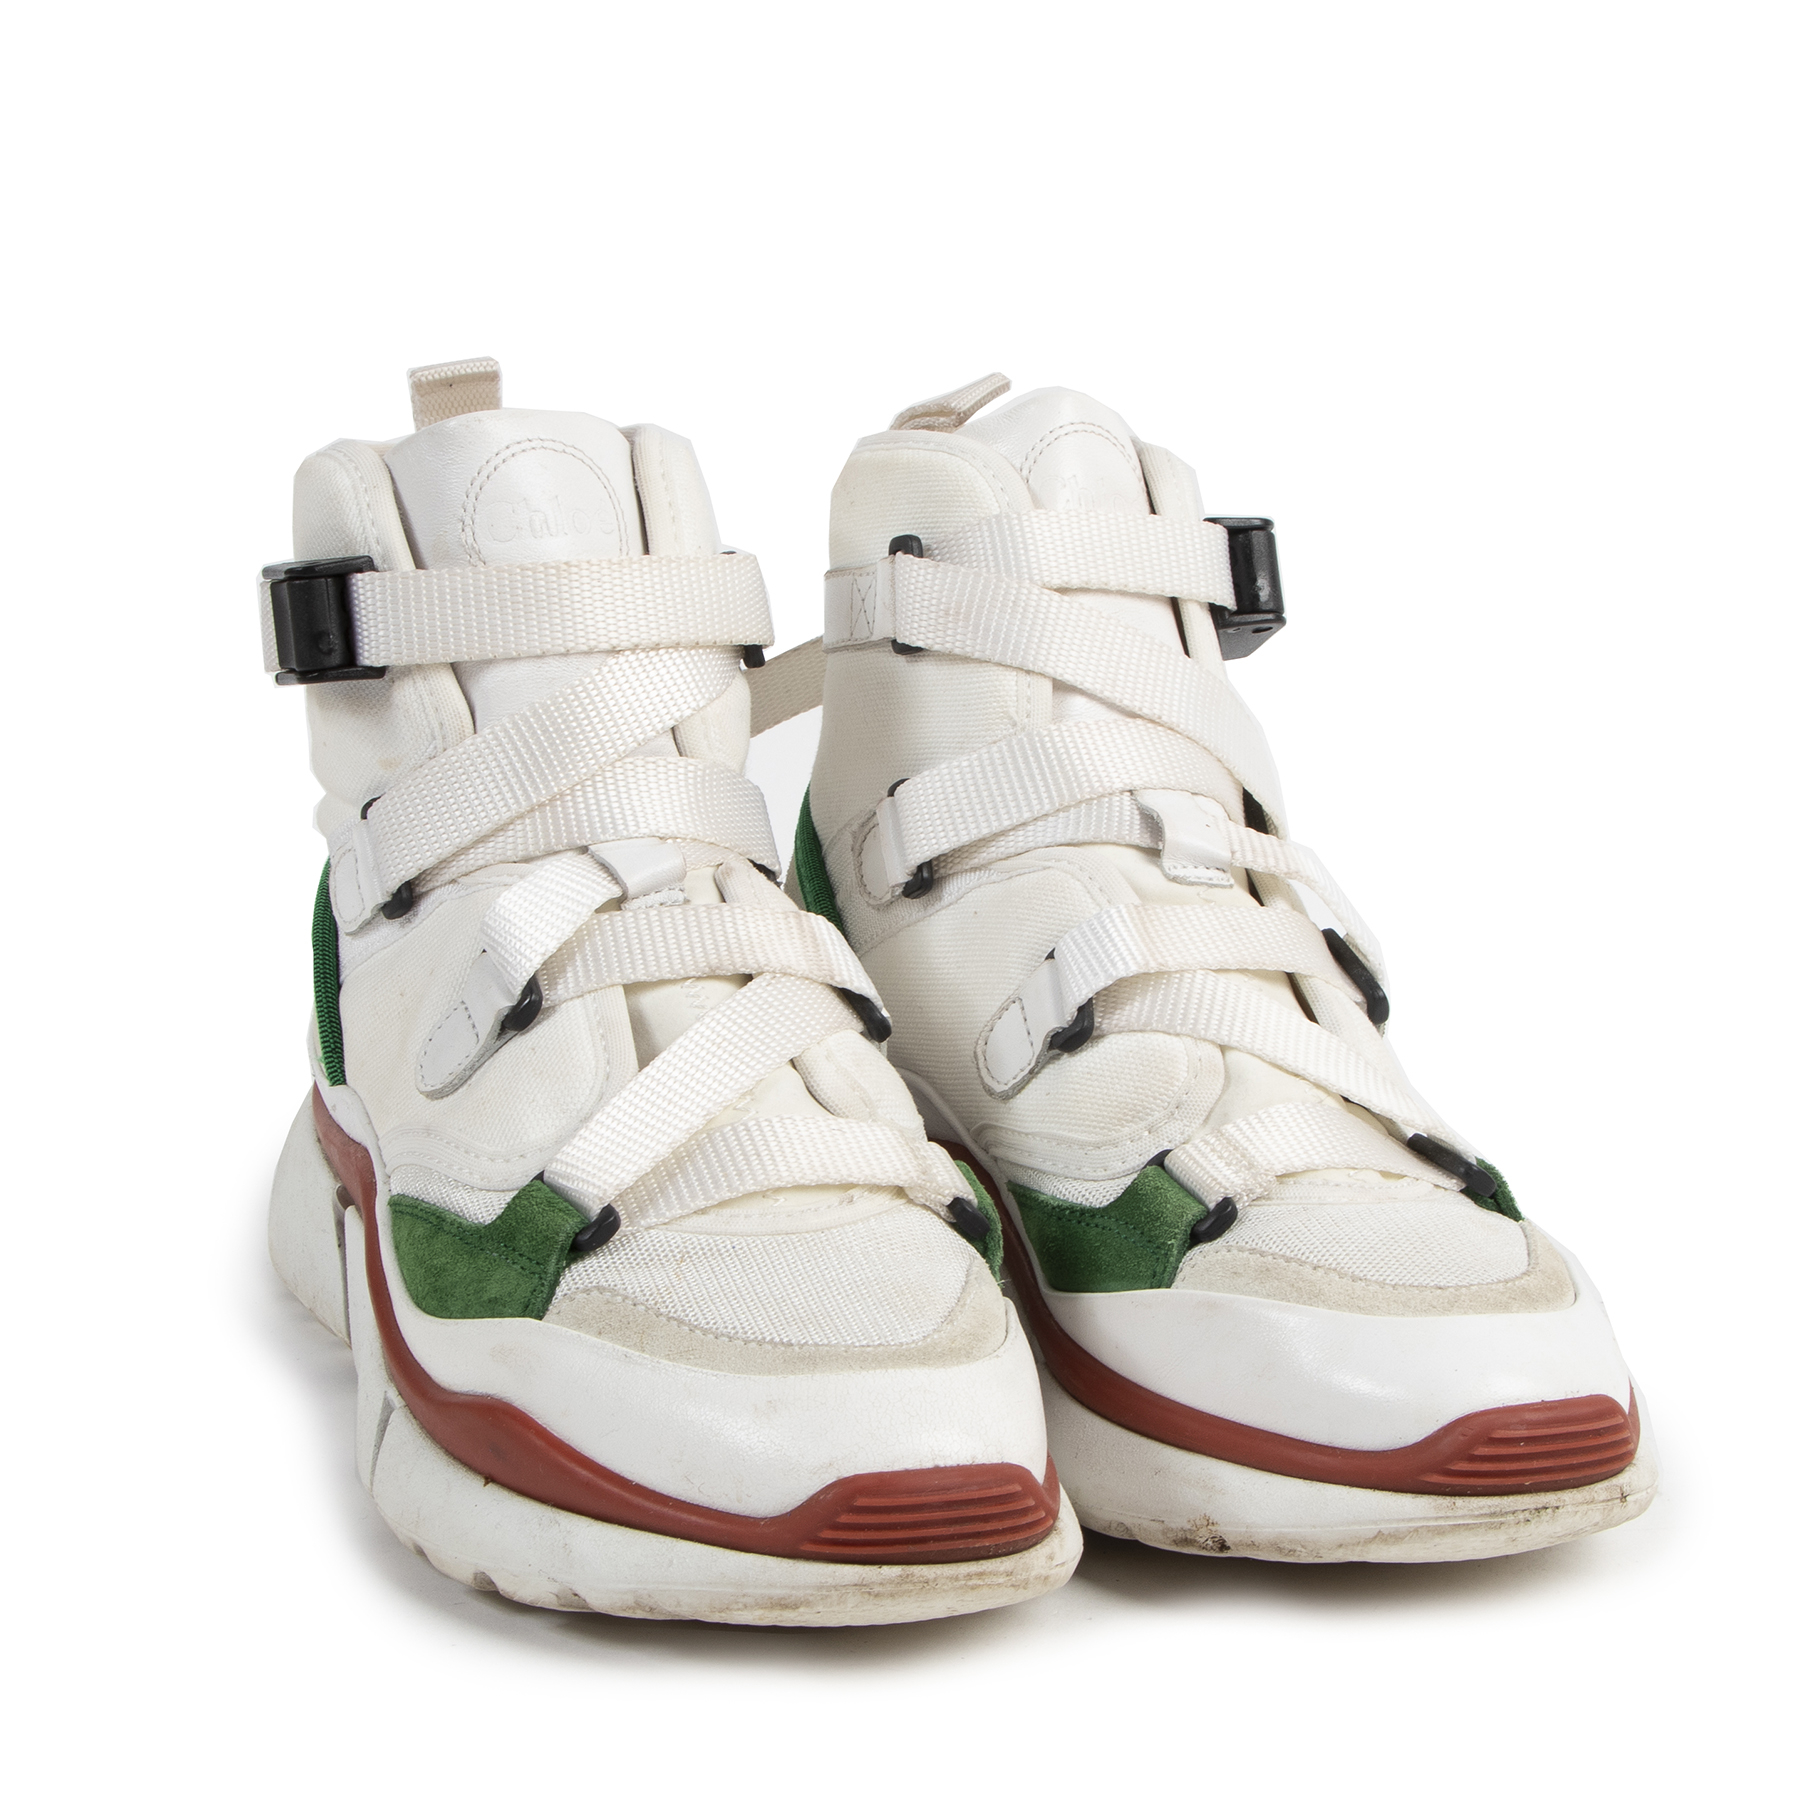 Chloé Sonnie High Top Sneakers White/Red/Green for the best price